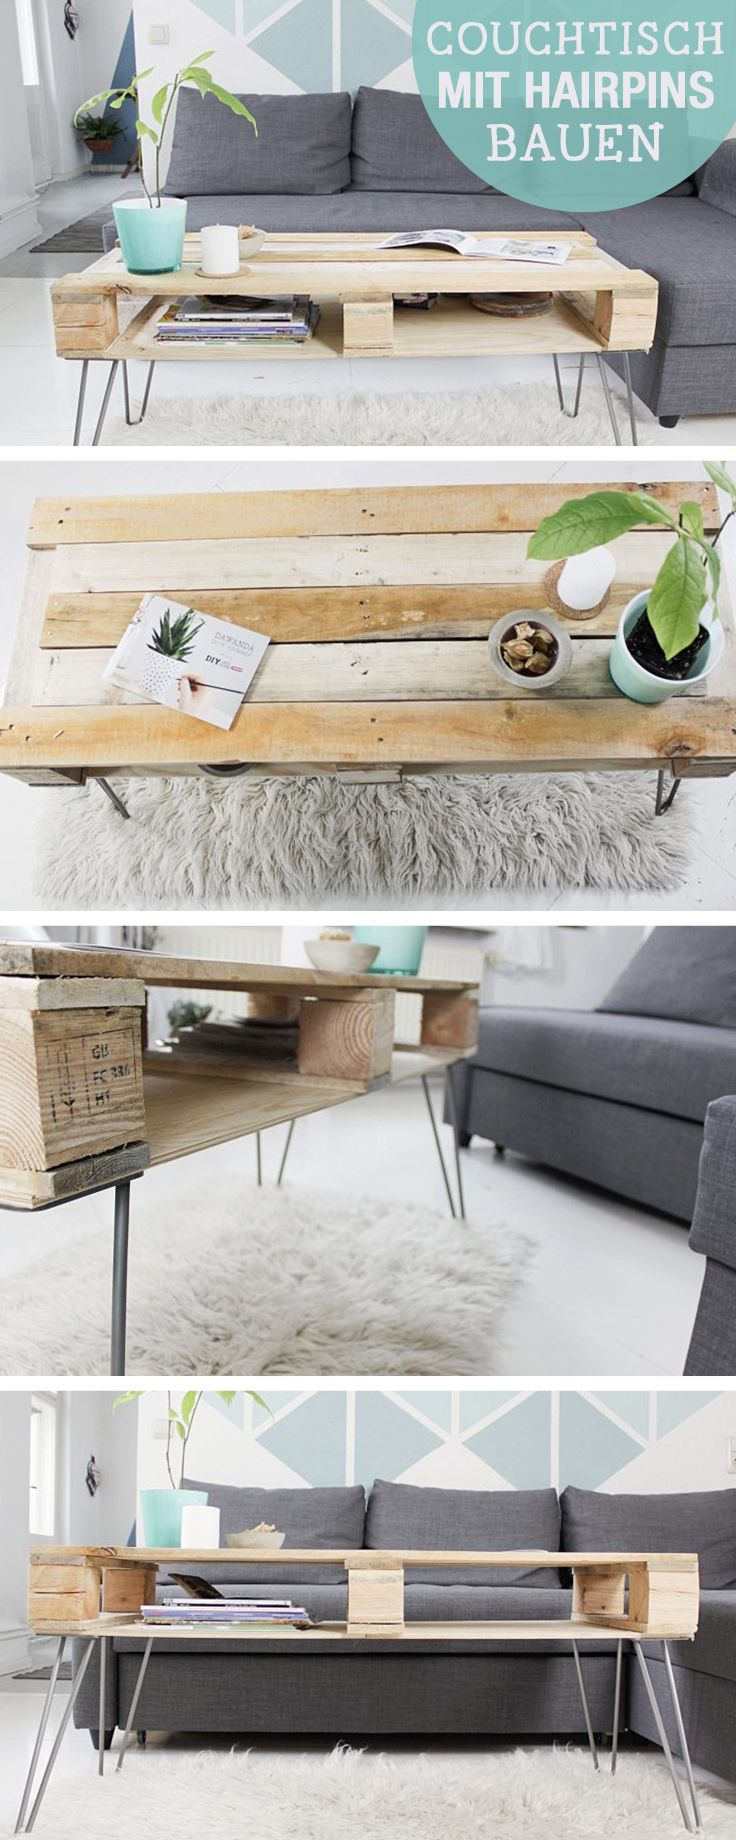 DIY-Anleitung für einen Paletten Couchtisch mit Hairpin Beinen, Möbel selberbauen / diy tutorial: couch table with hairpin legs via DaWanda.com